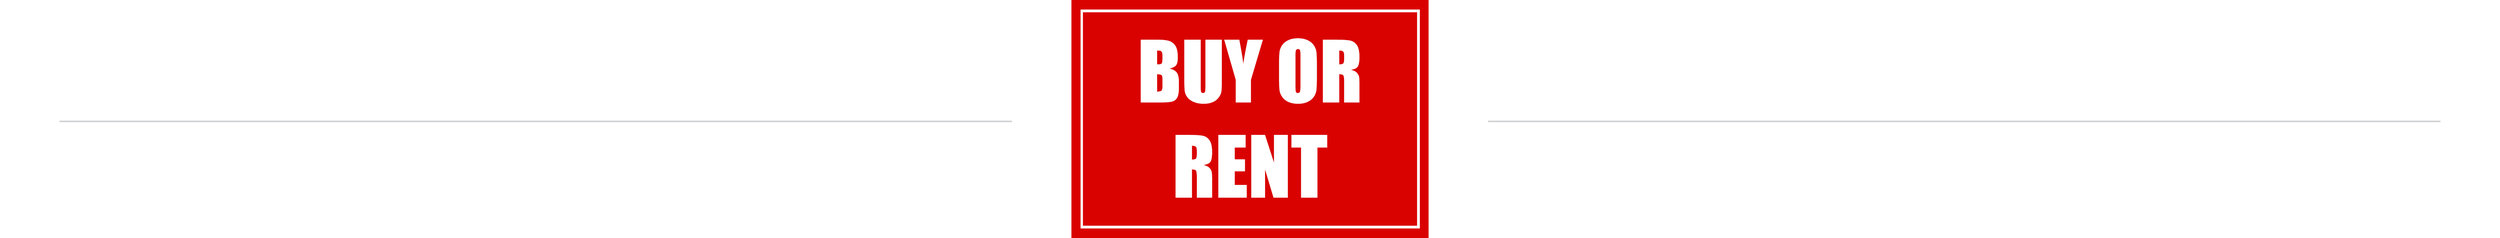 Buy or Rent Sign 2.jpg